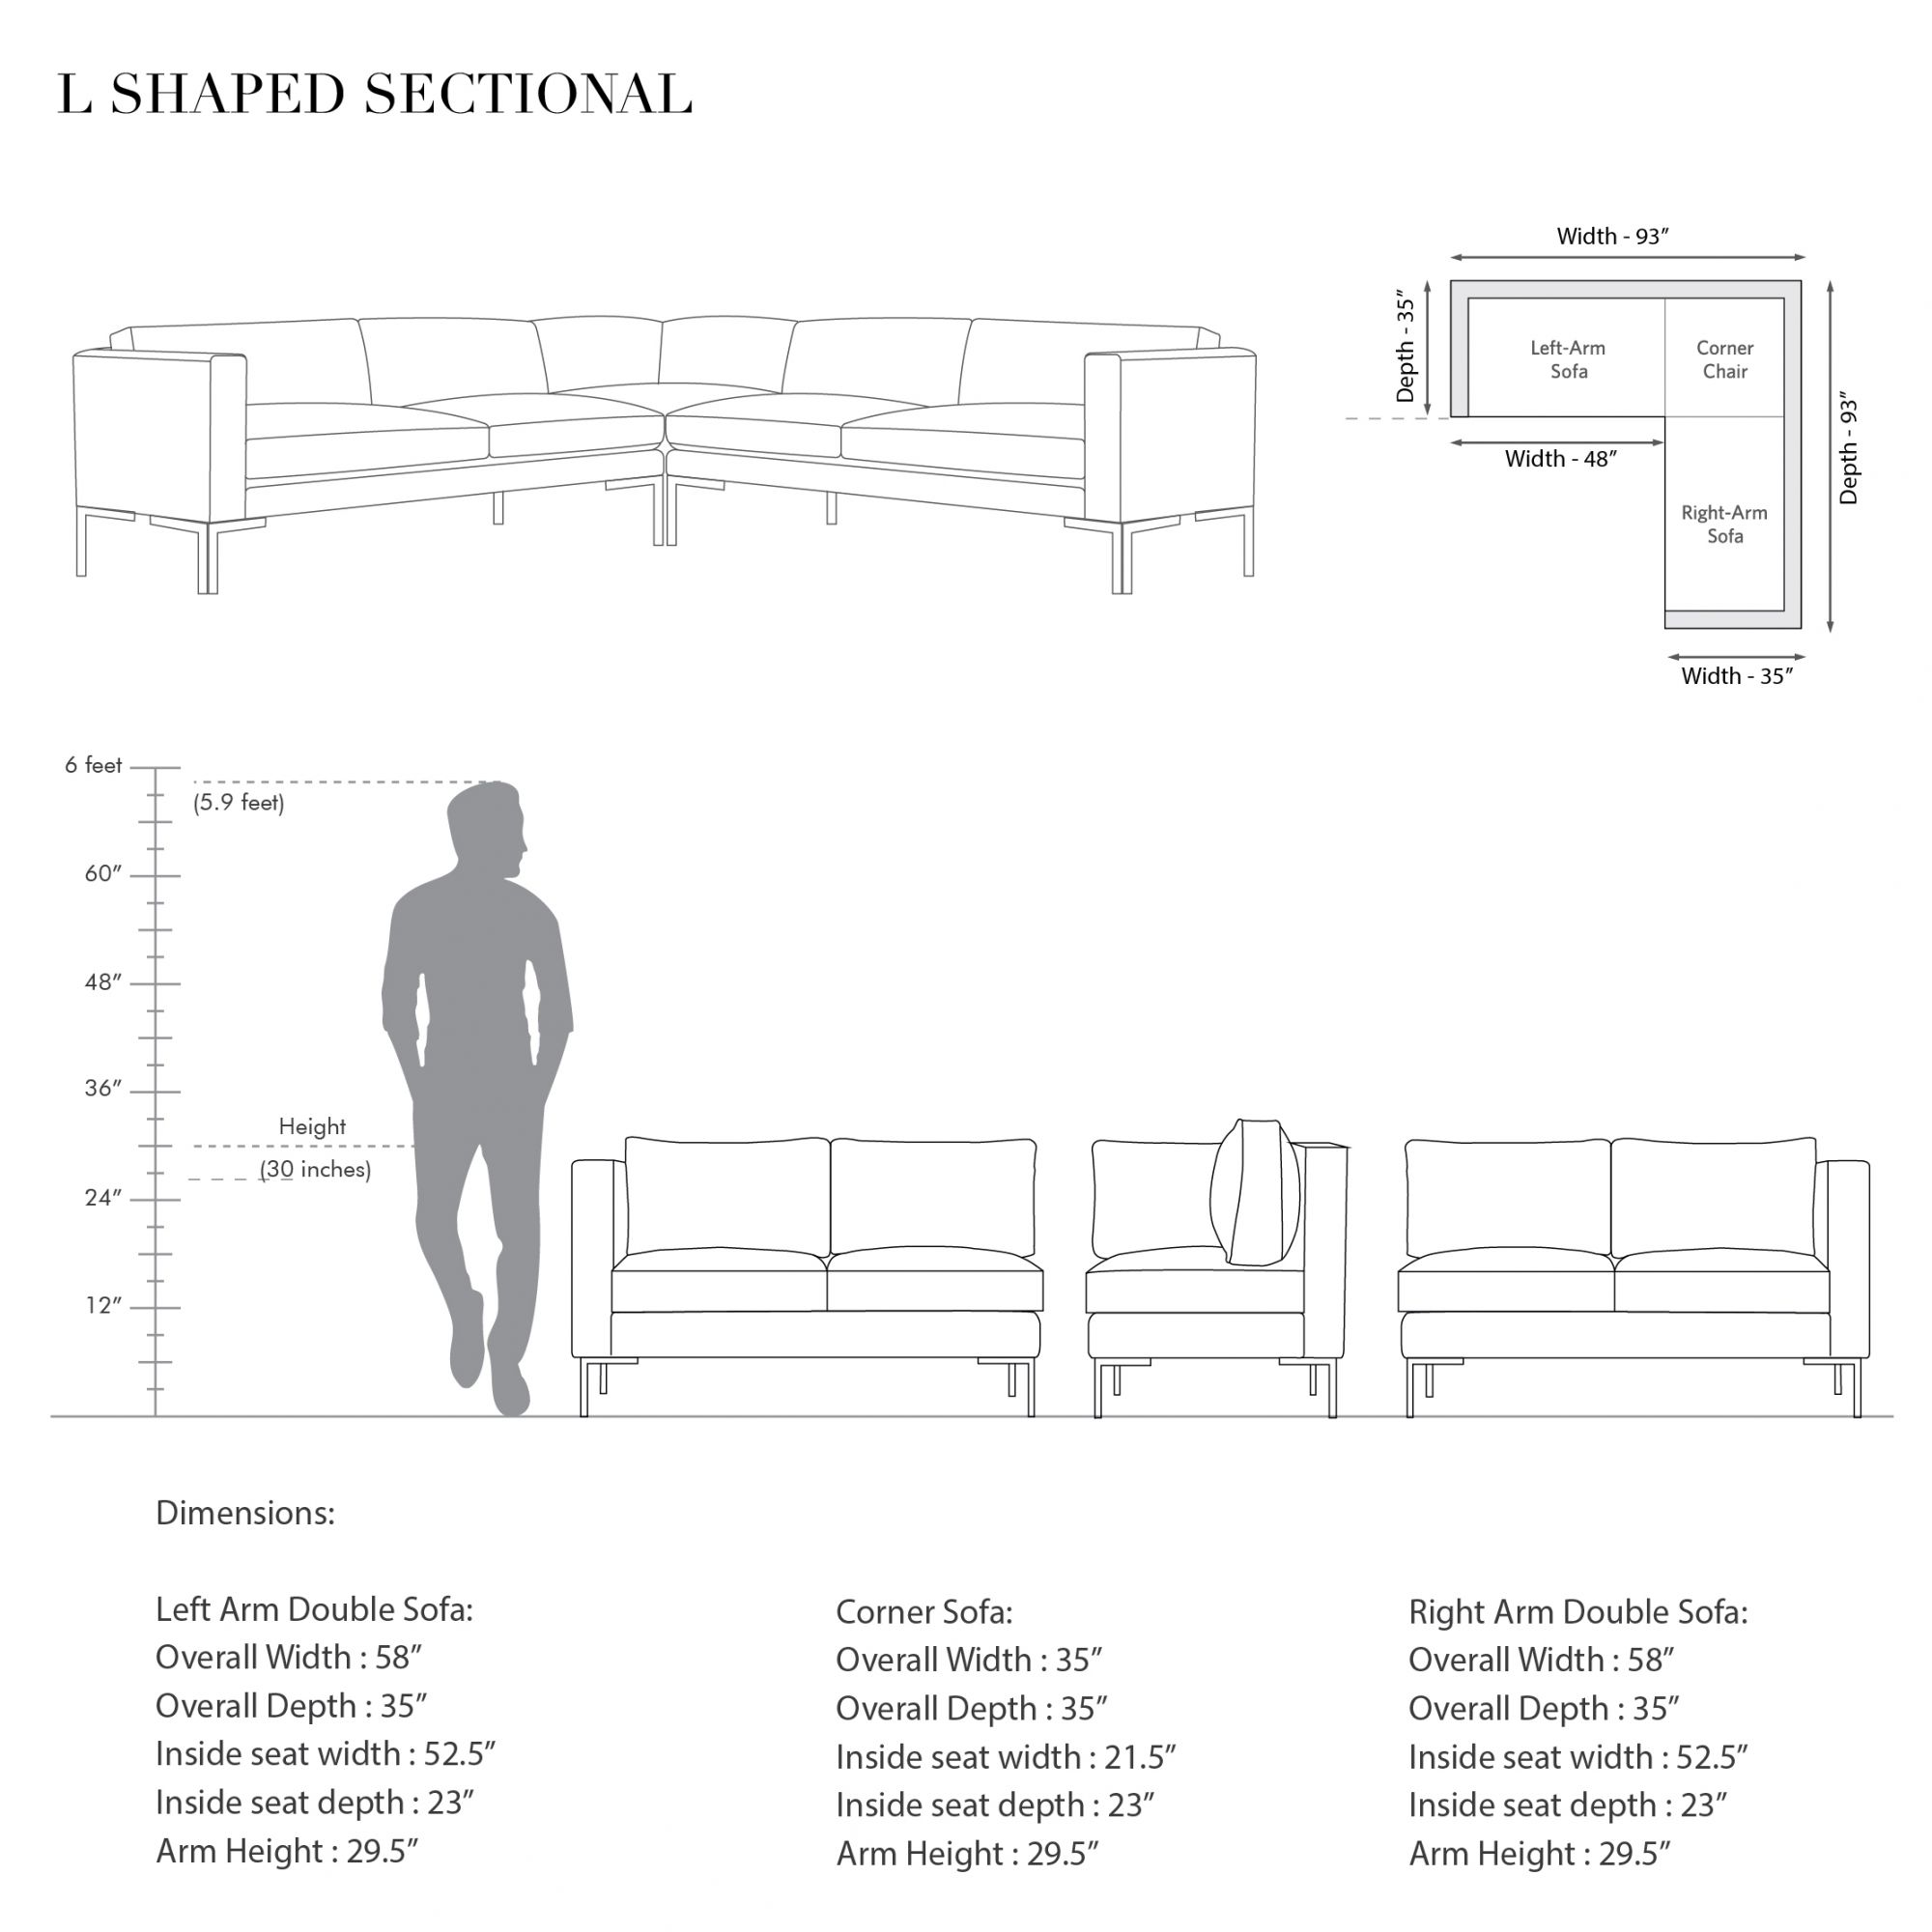 L.A L-shaped Sectional